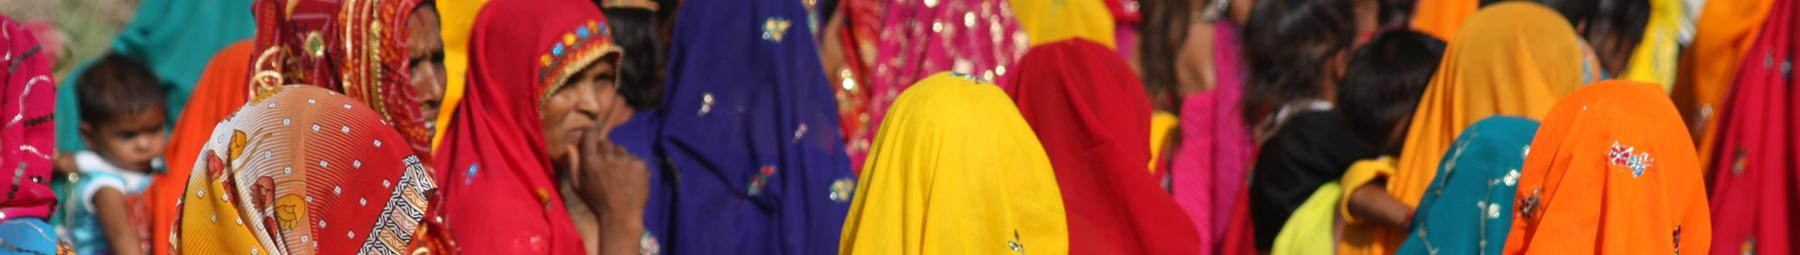 Women in brightly coloured saris, India.